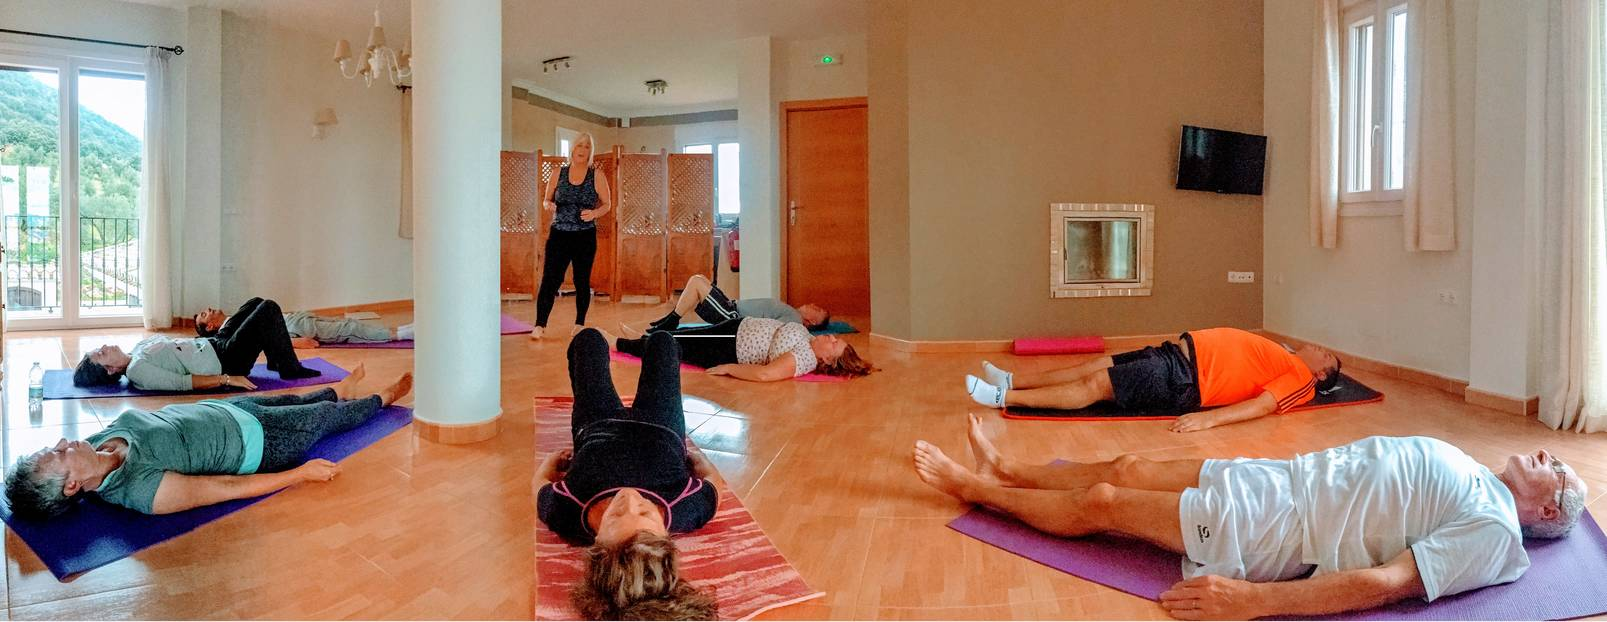 rsz_yoga_room_panoramic_view